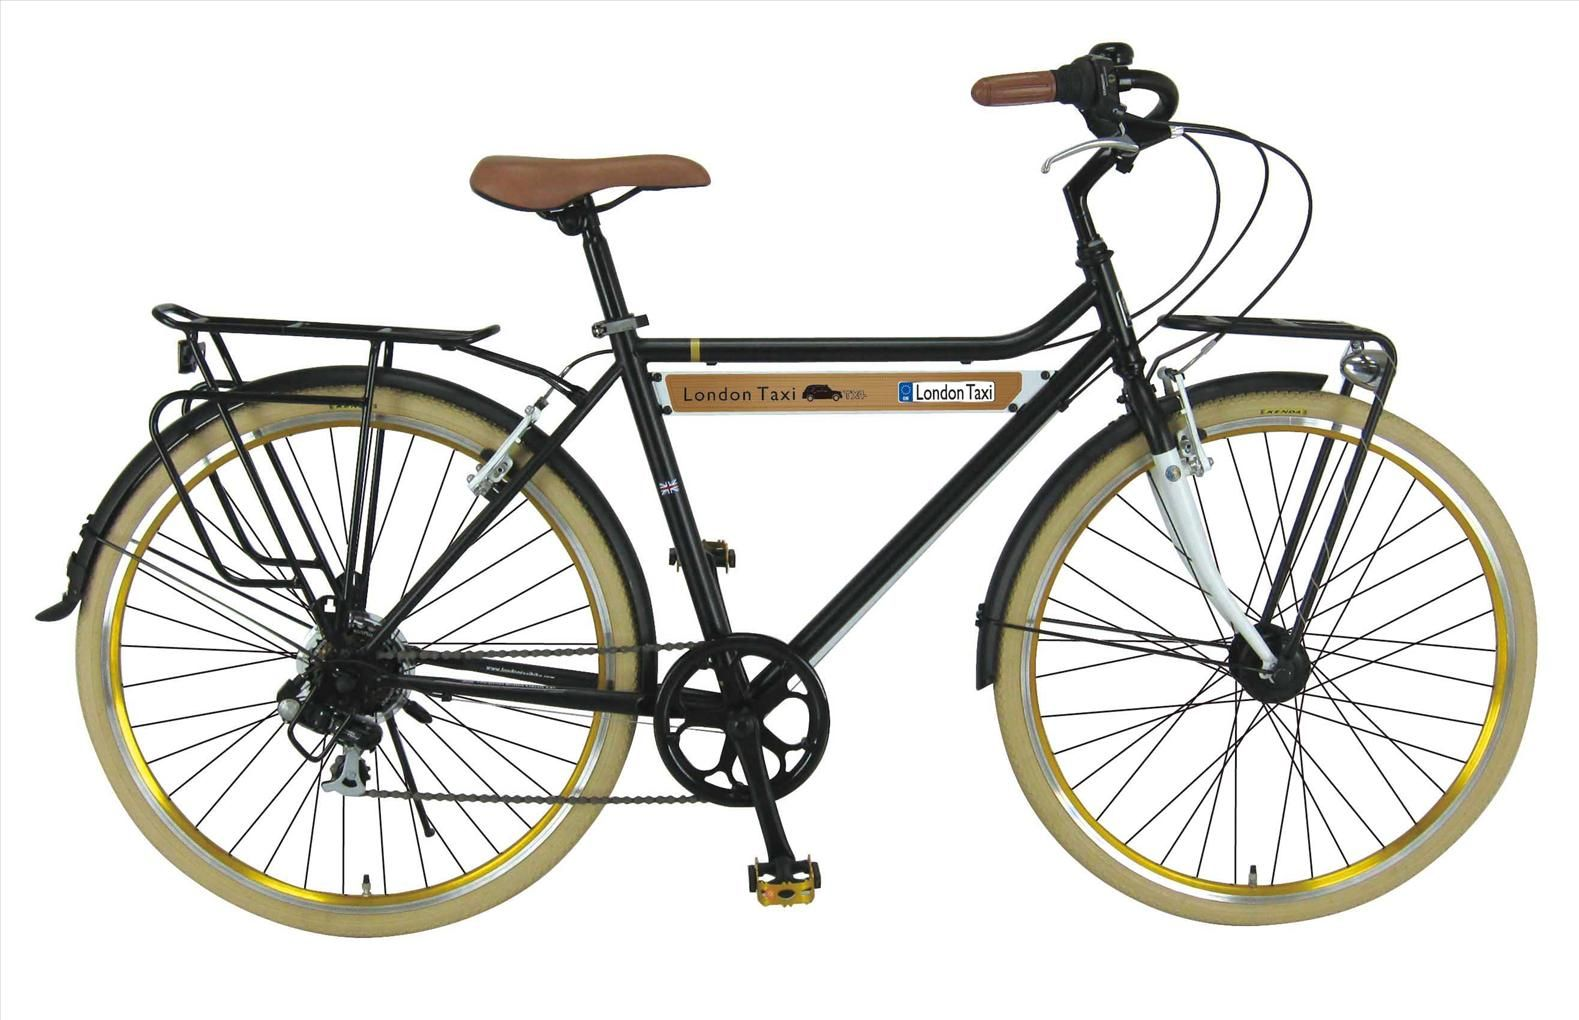 Bicycle London Taxi Google Search Sepeda